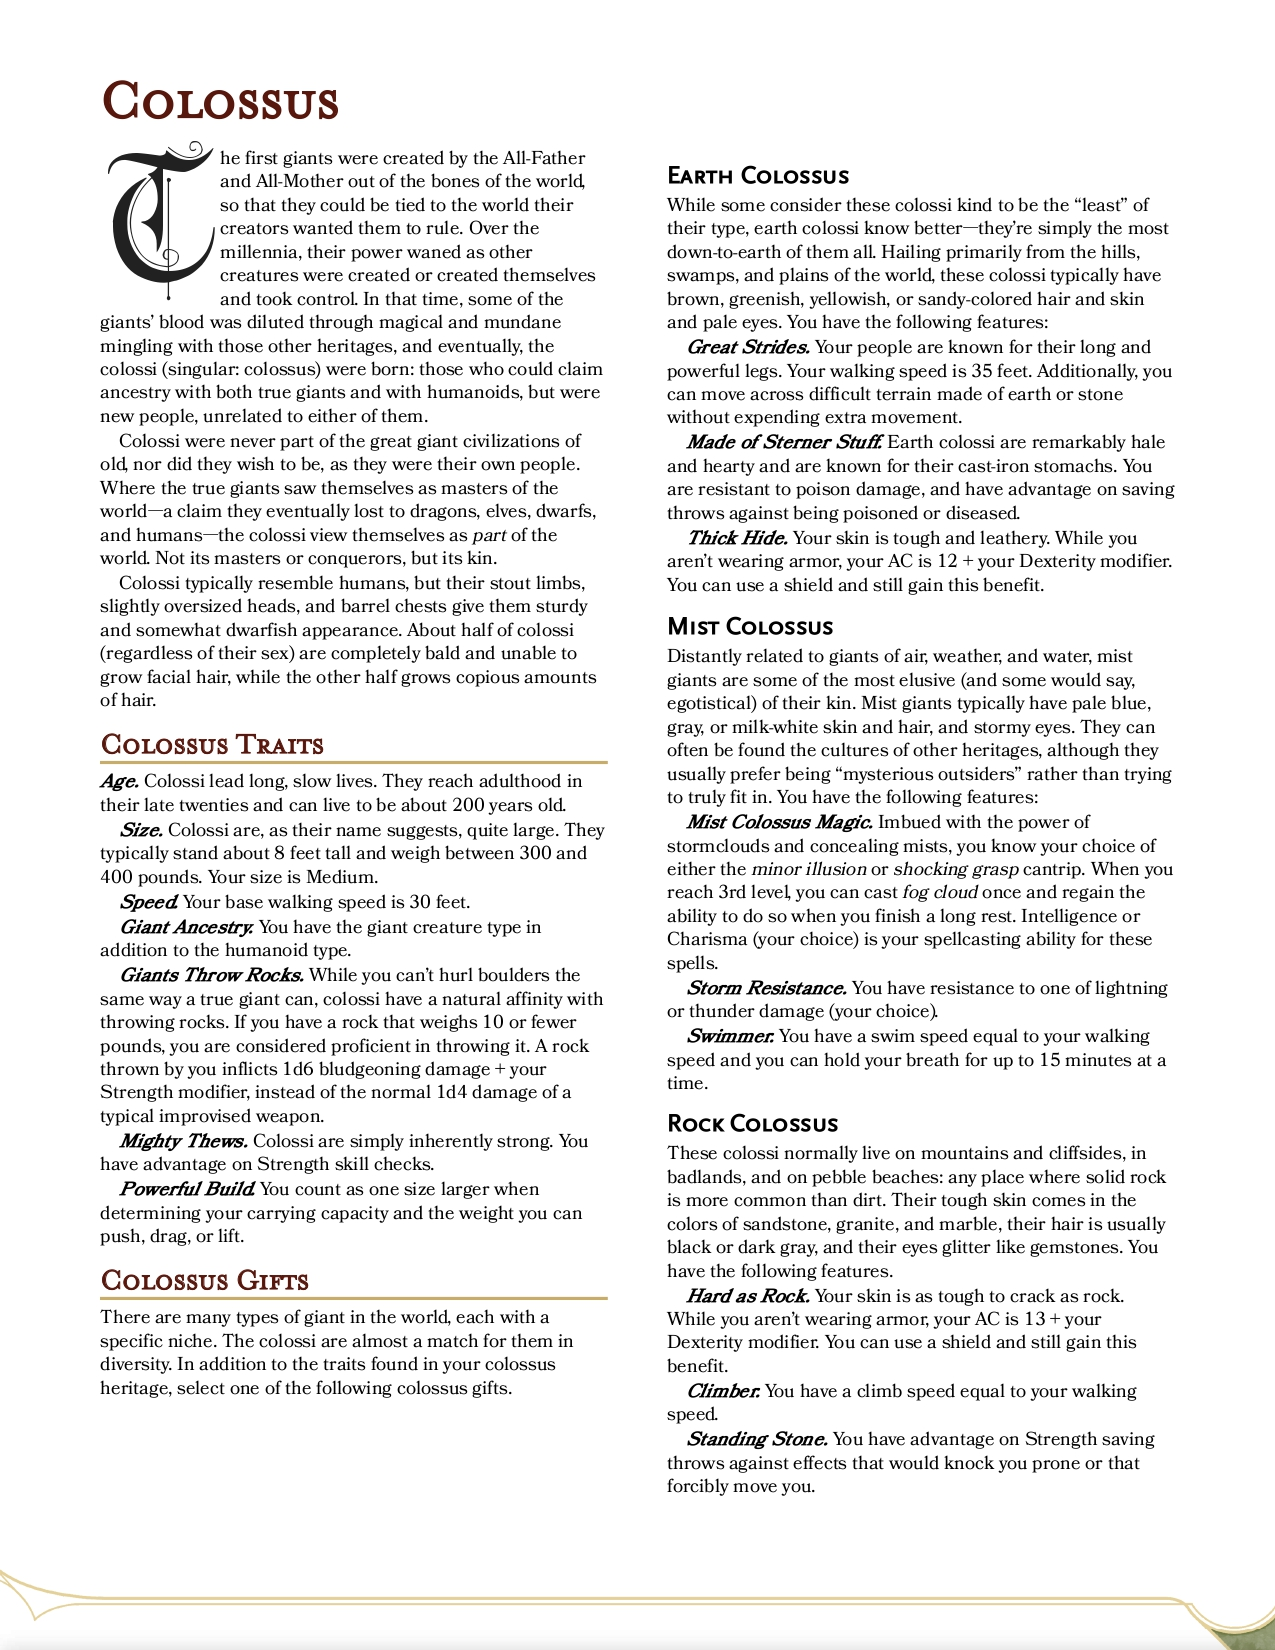 My Heritages and Cultures_page-0003.jpg